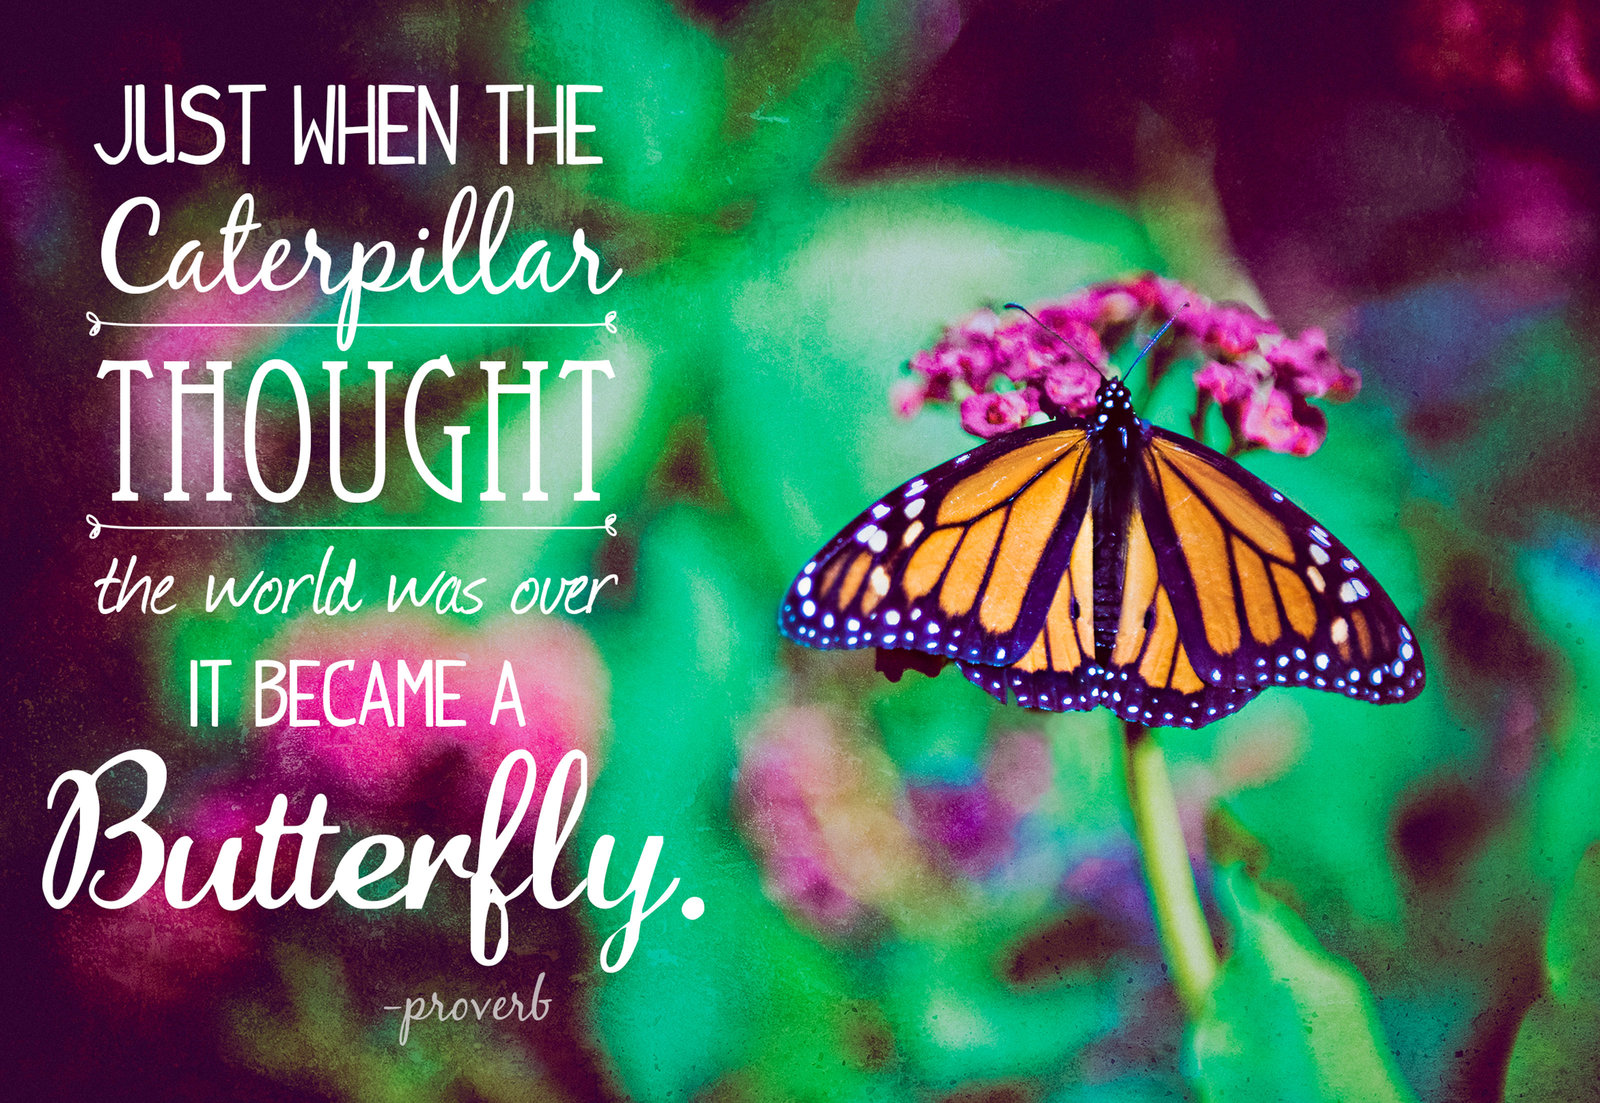 Butterfly macro photography with caterpillar quote